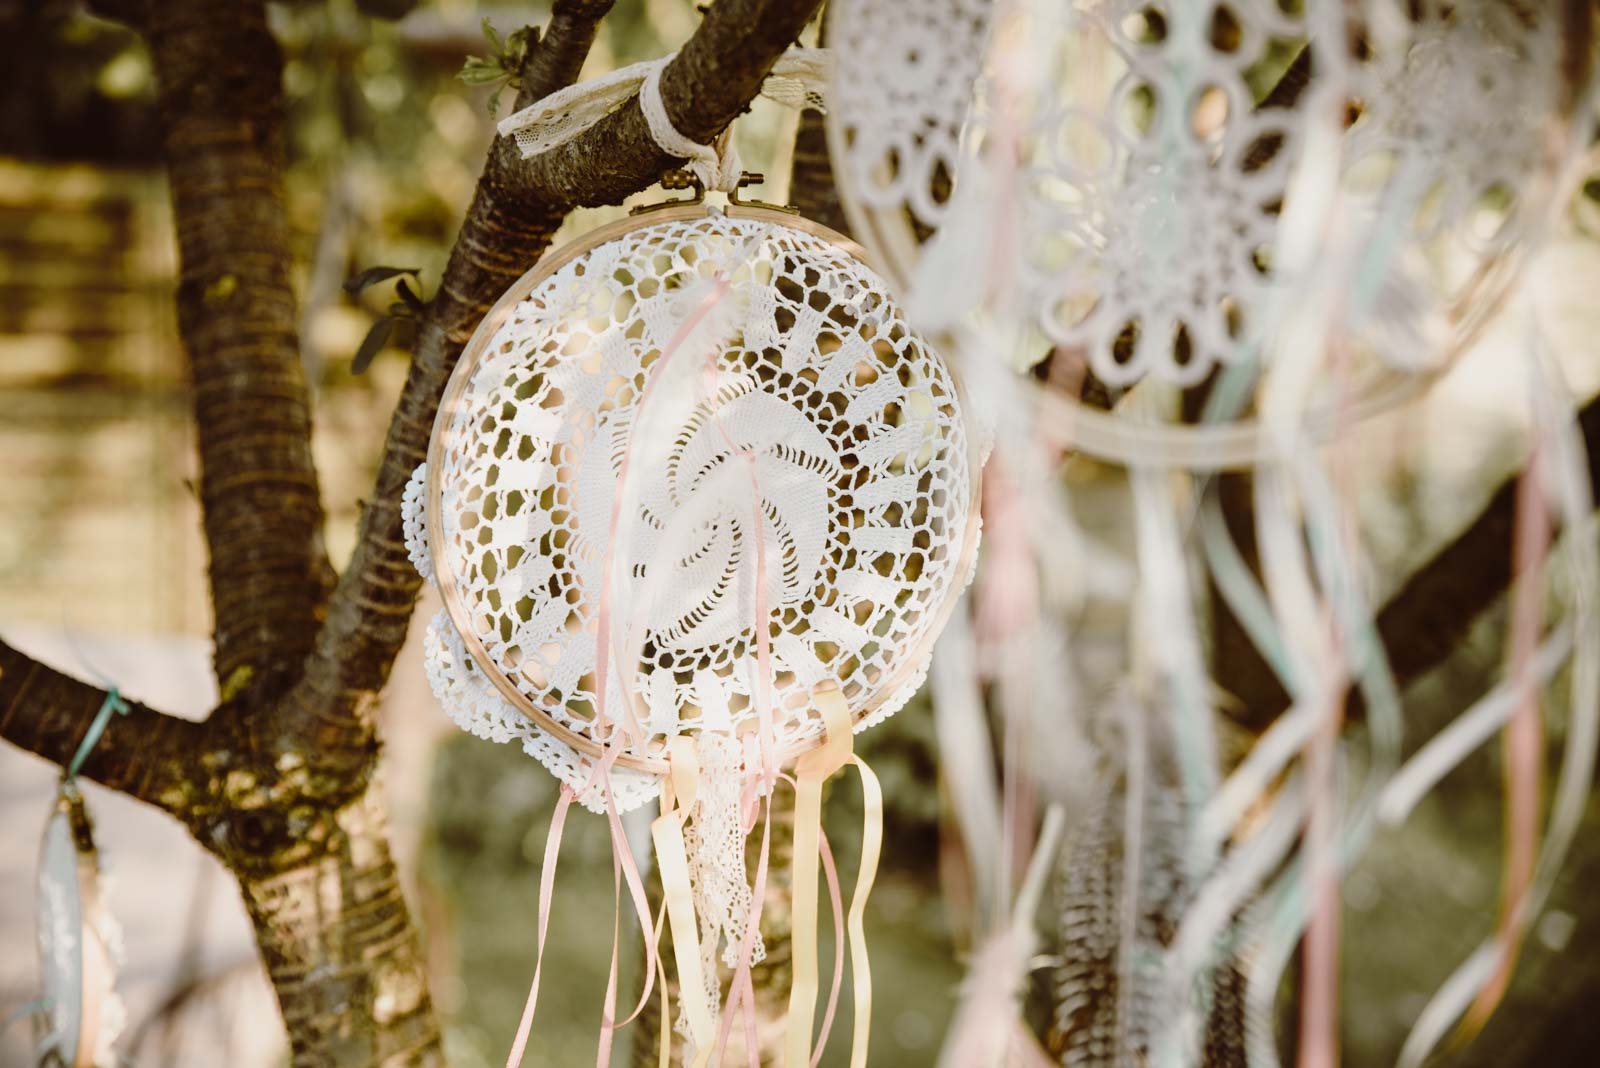 DIY-Dreamcatcher-Boho-Wedding-Dekoration-Traumfaenger-Hochzeitsdekoration-11